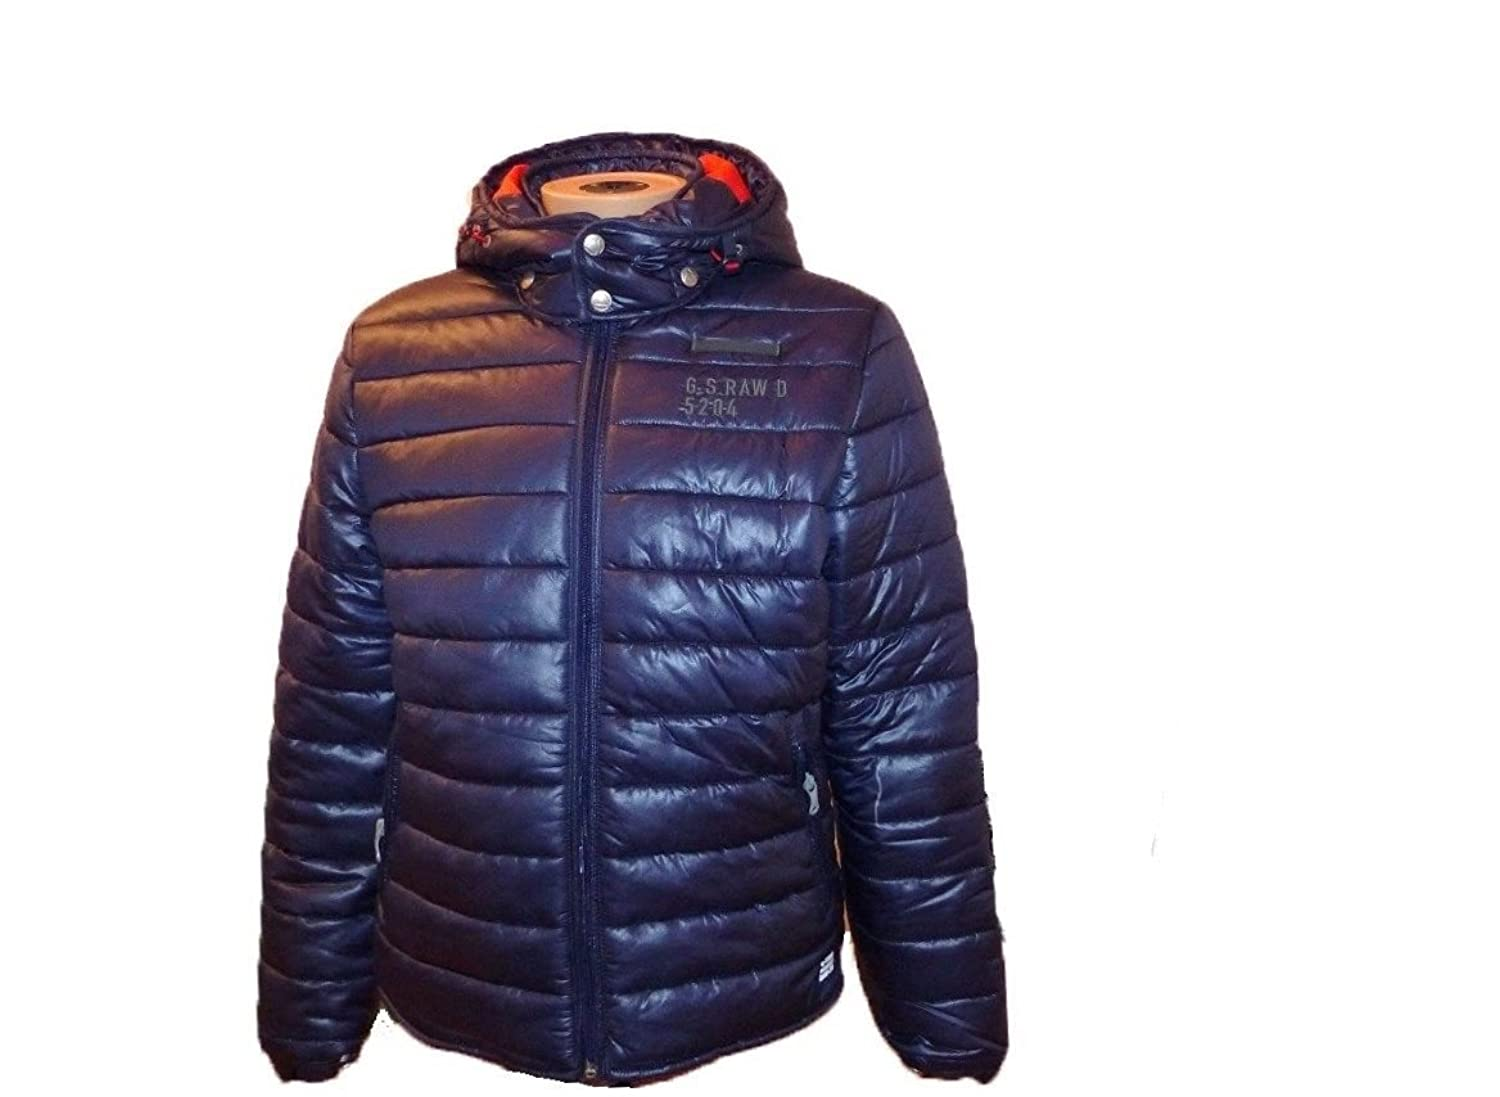 G-STAR HEADON HODDED WINTER HEEREN JACKE JKT SHADE Gr L kaufen